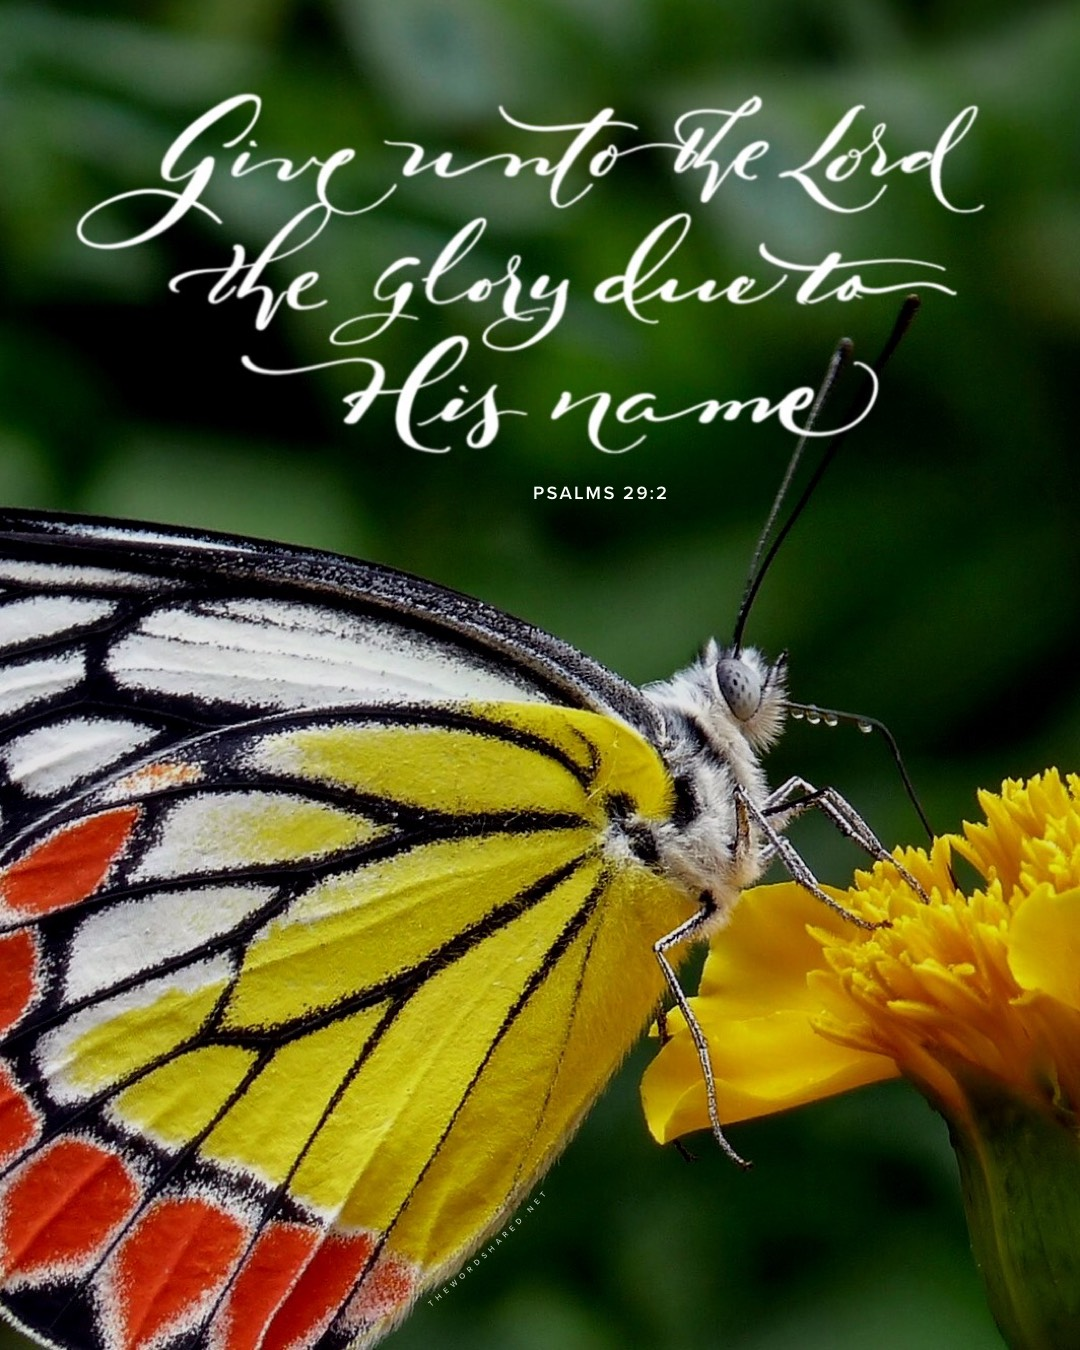 Give unto the lord the glory due His Name